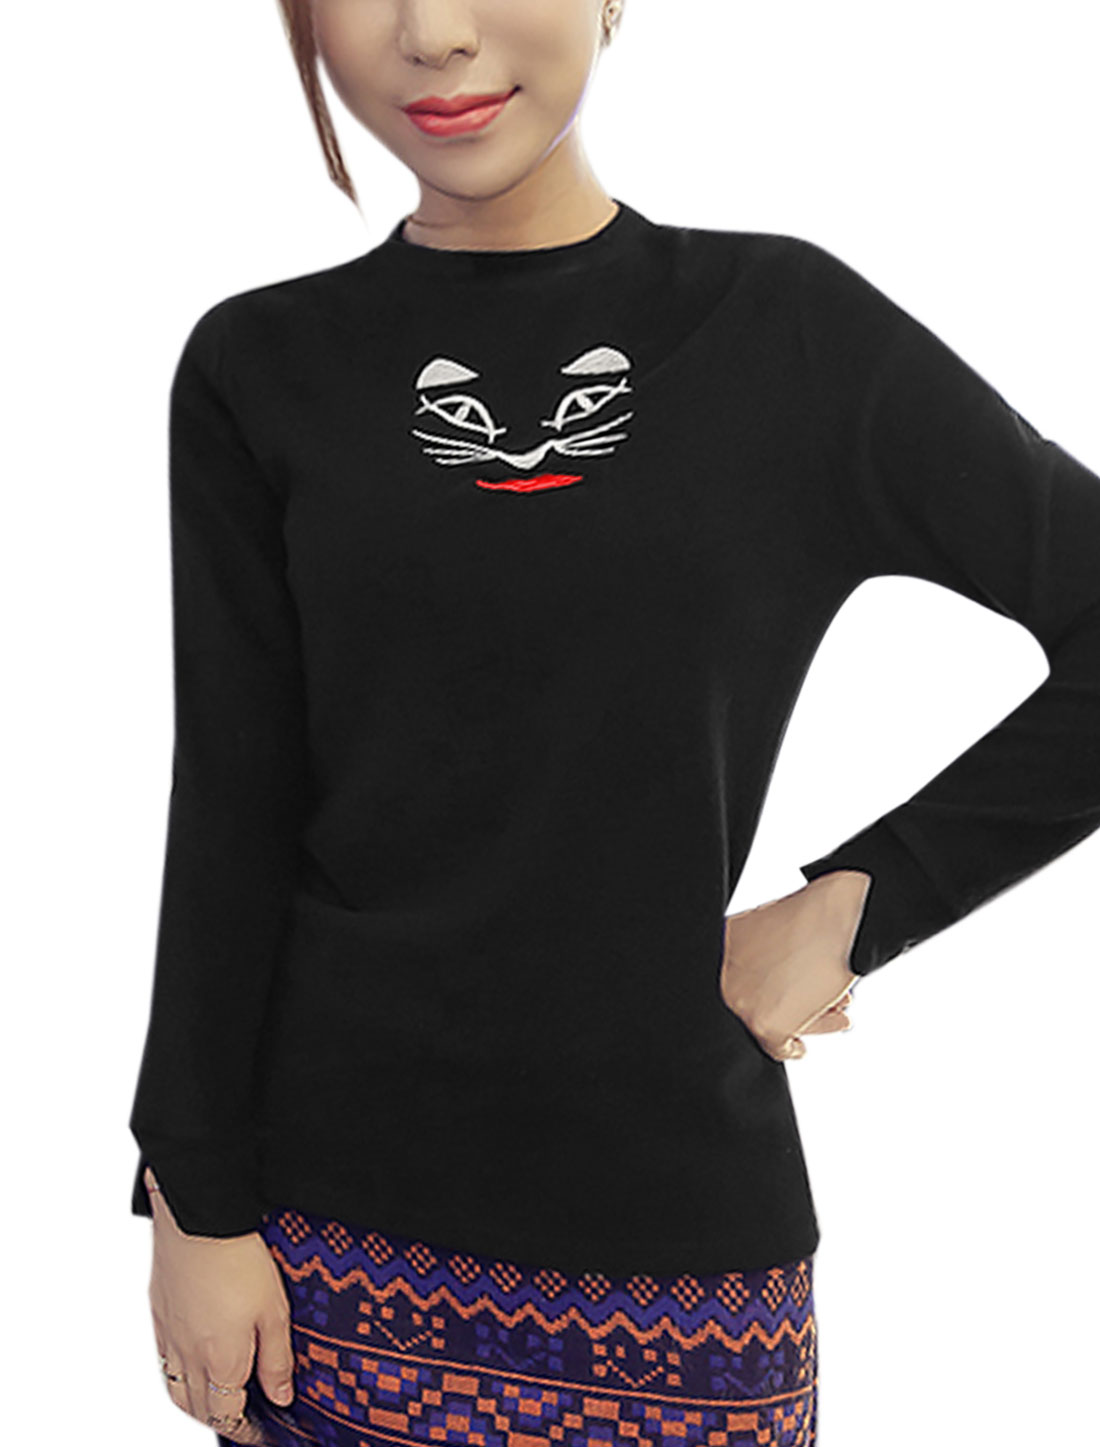 Lady Crew Neck Long Sleeves Cat Embroidery Casual Tee Shirt Black XS